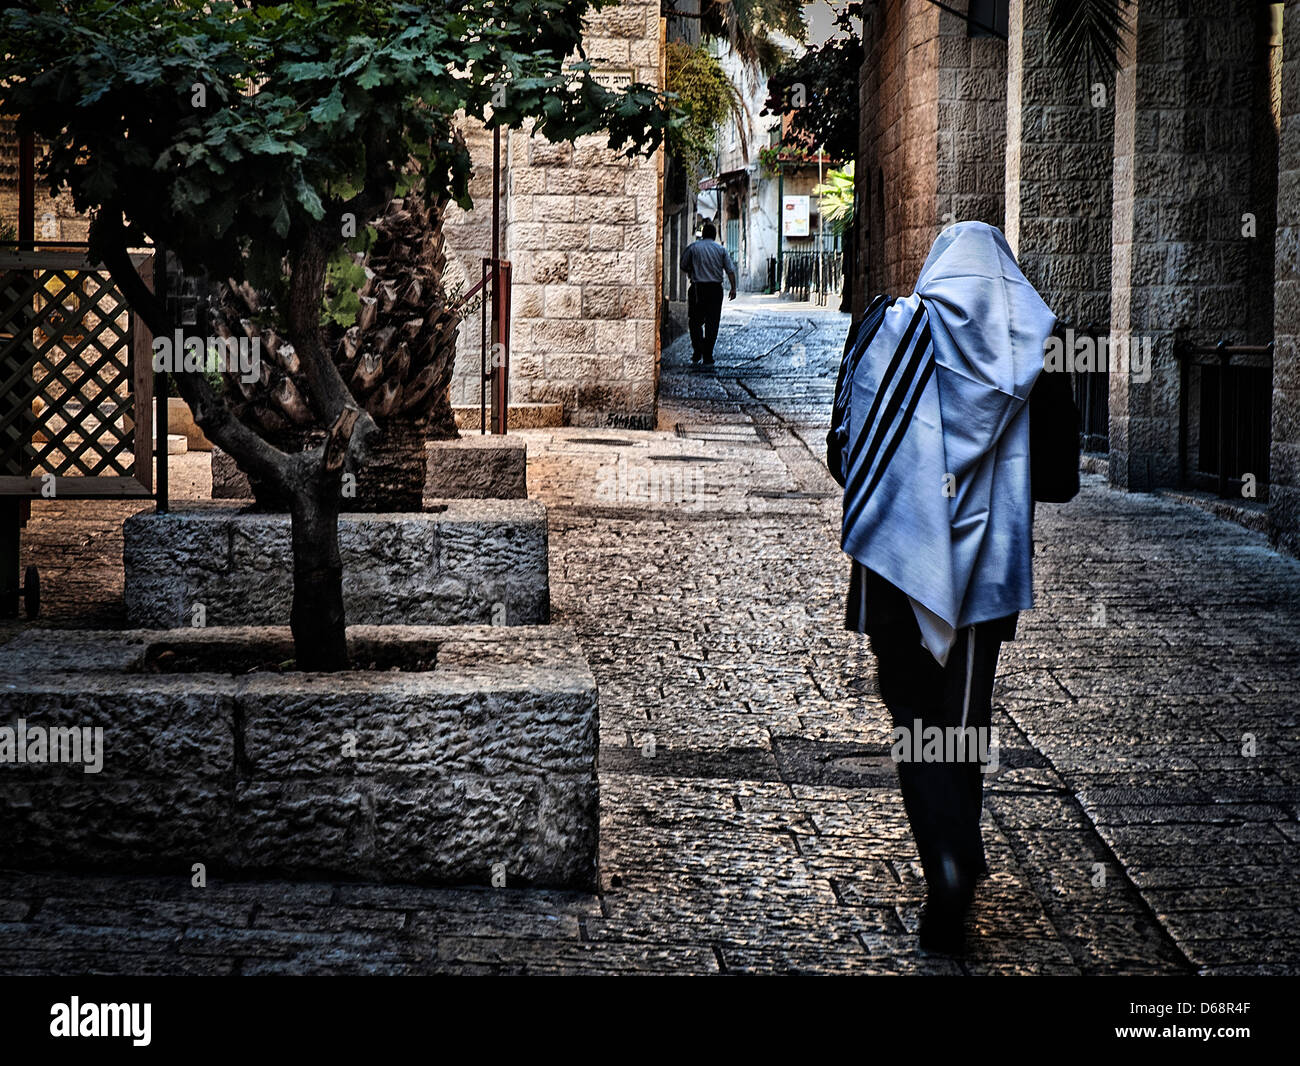 Jewish man wrapped in a tallith in the Jewish Quarter, Old City, Jerusalem - Stock Image